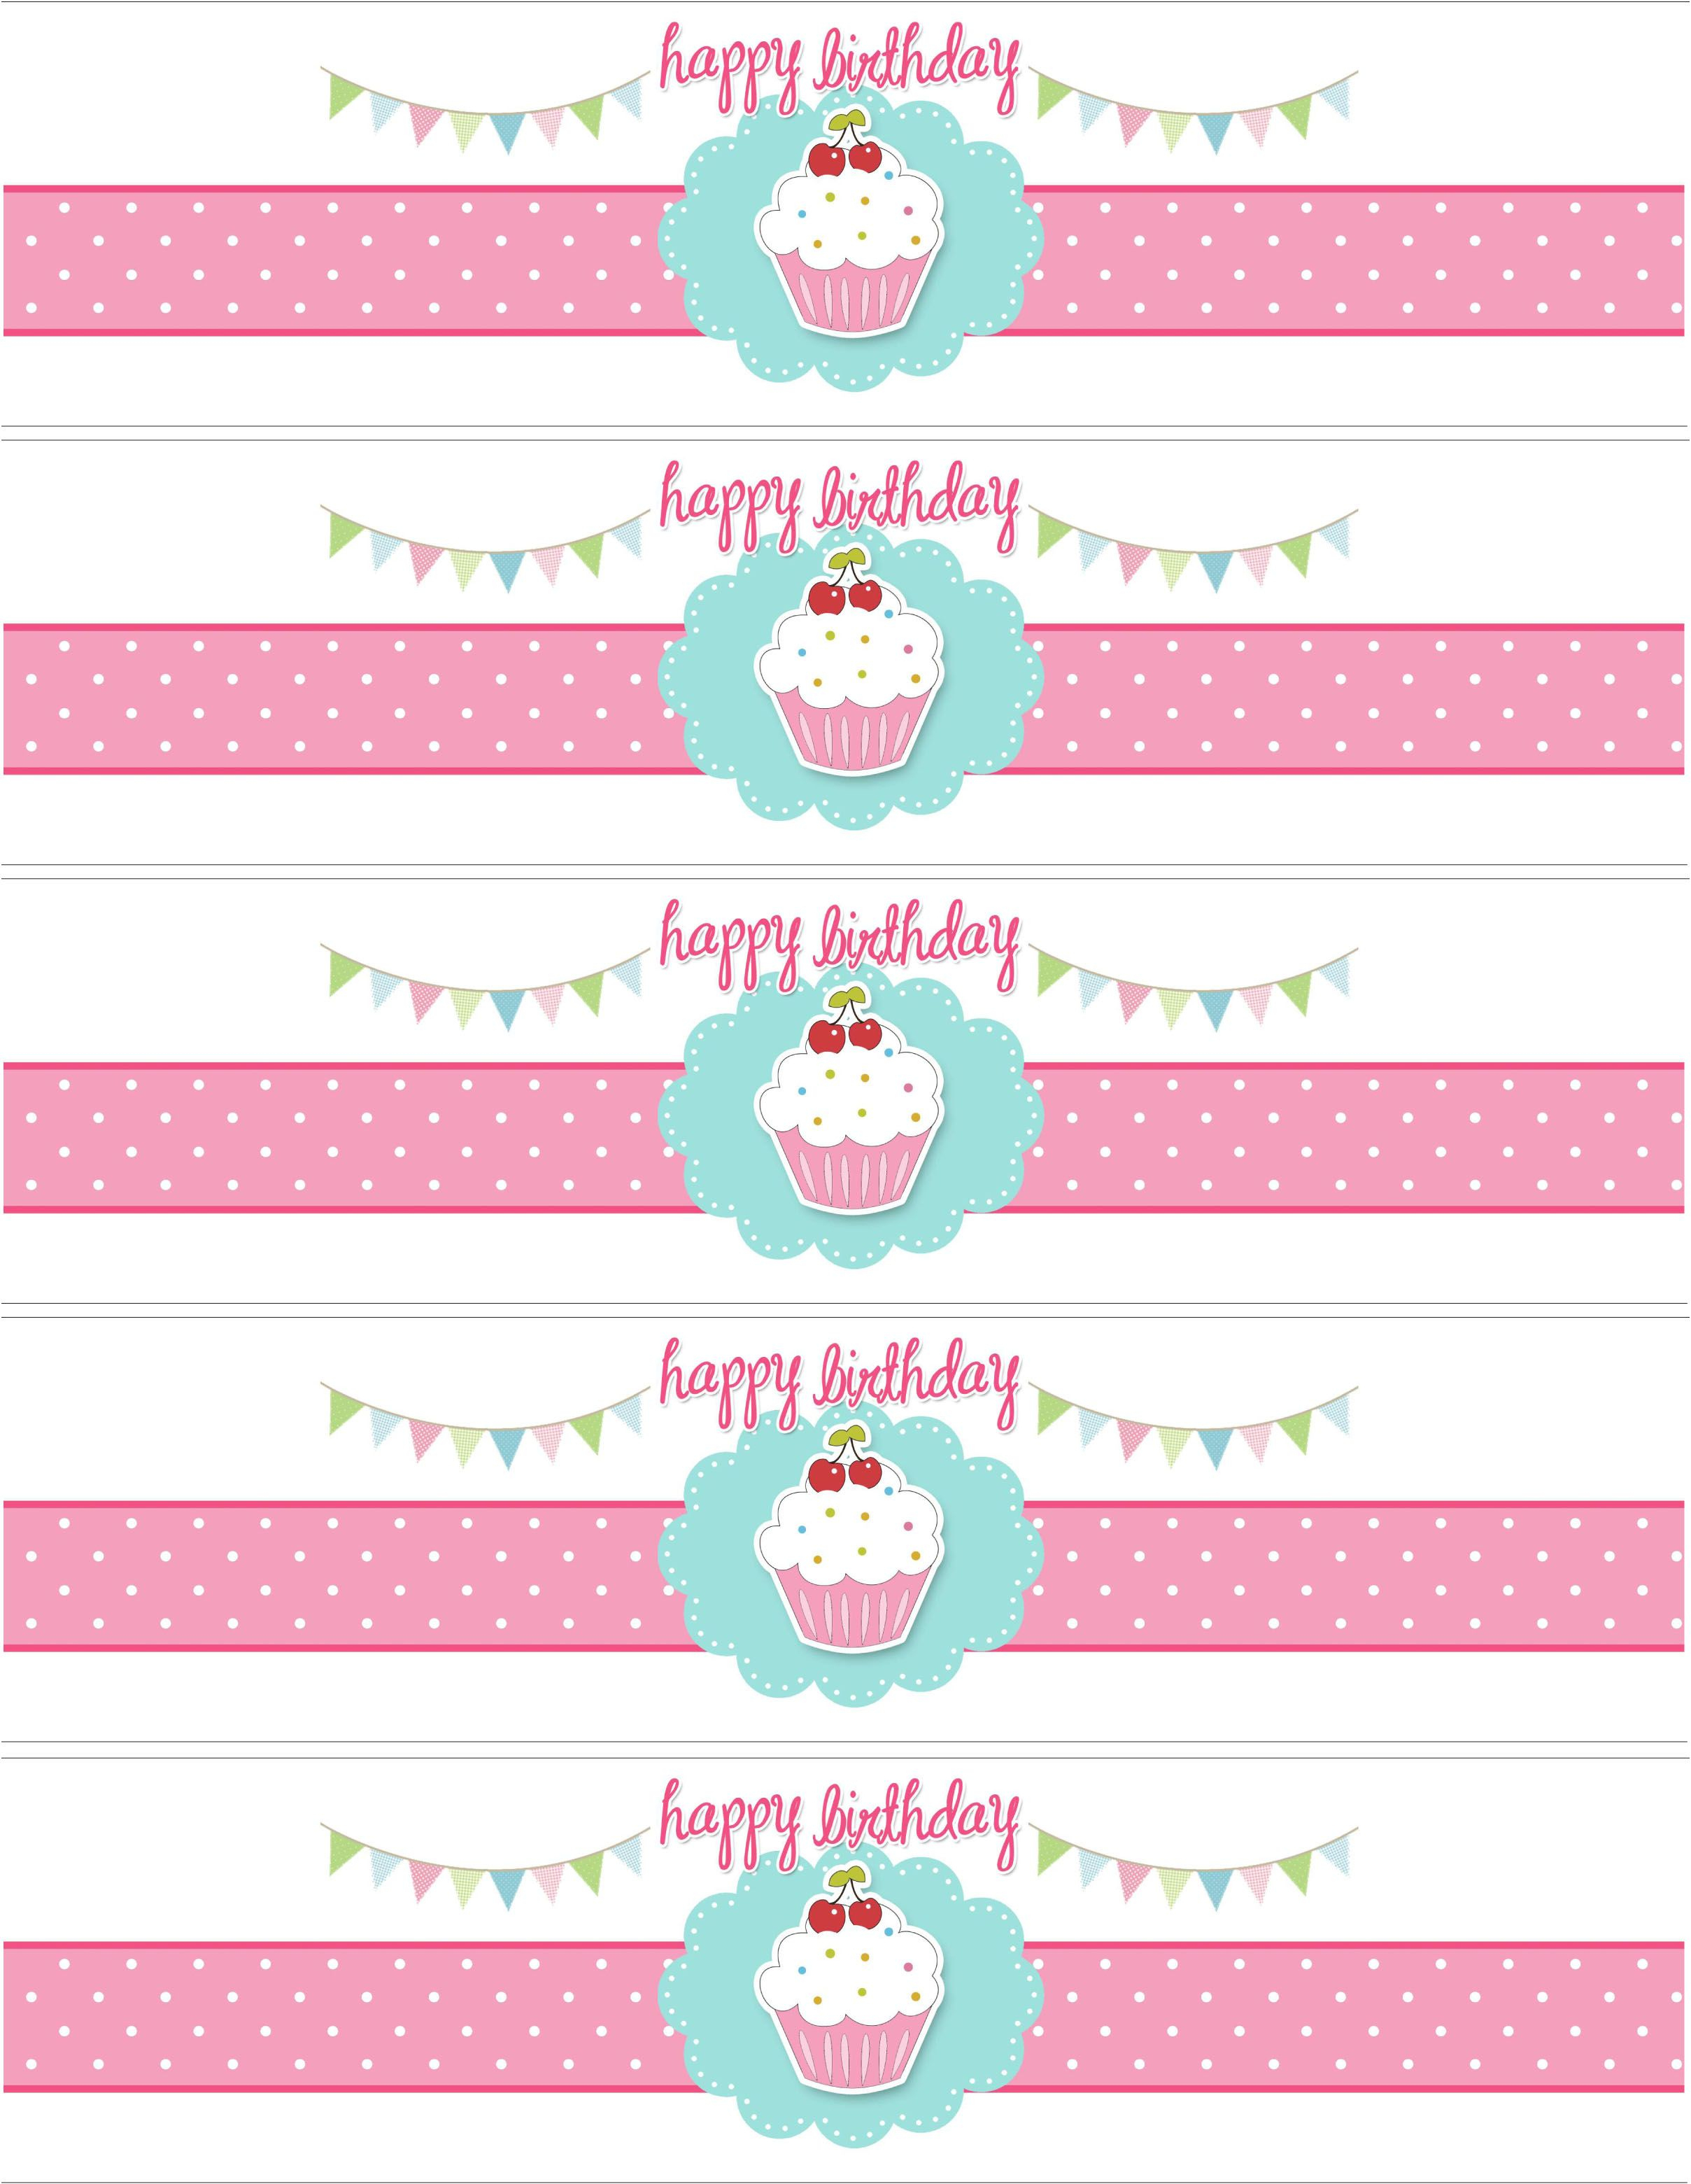 Cupcake Birthday Party With Free Printables | Diy Birthday Party - Free Printable Water Bottle Labels